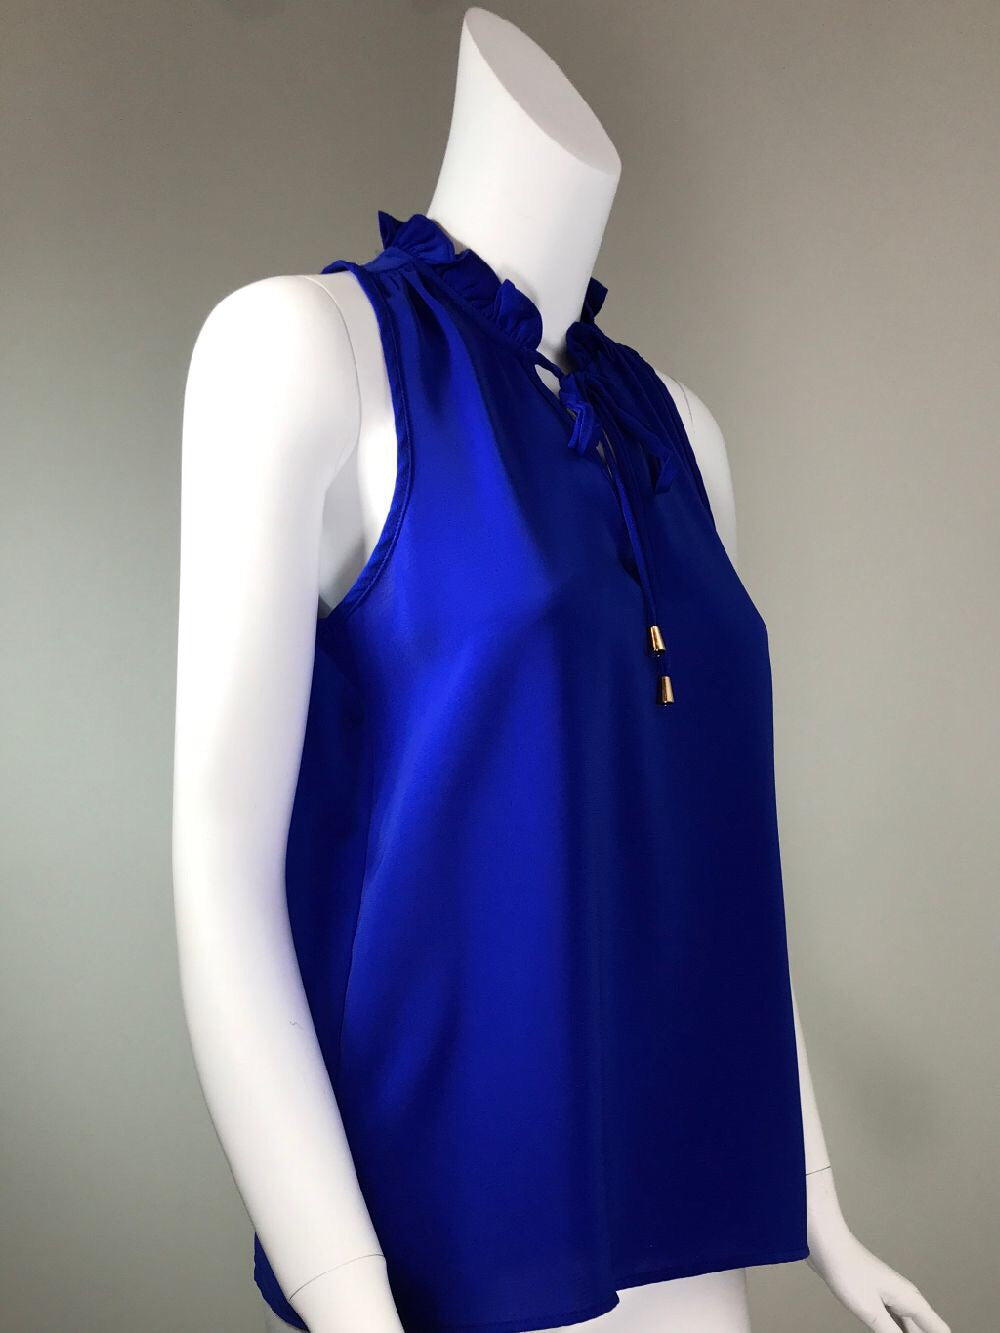 Ruffle Neck Sleeveless Top - Royal